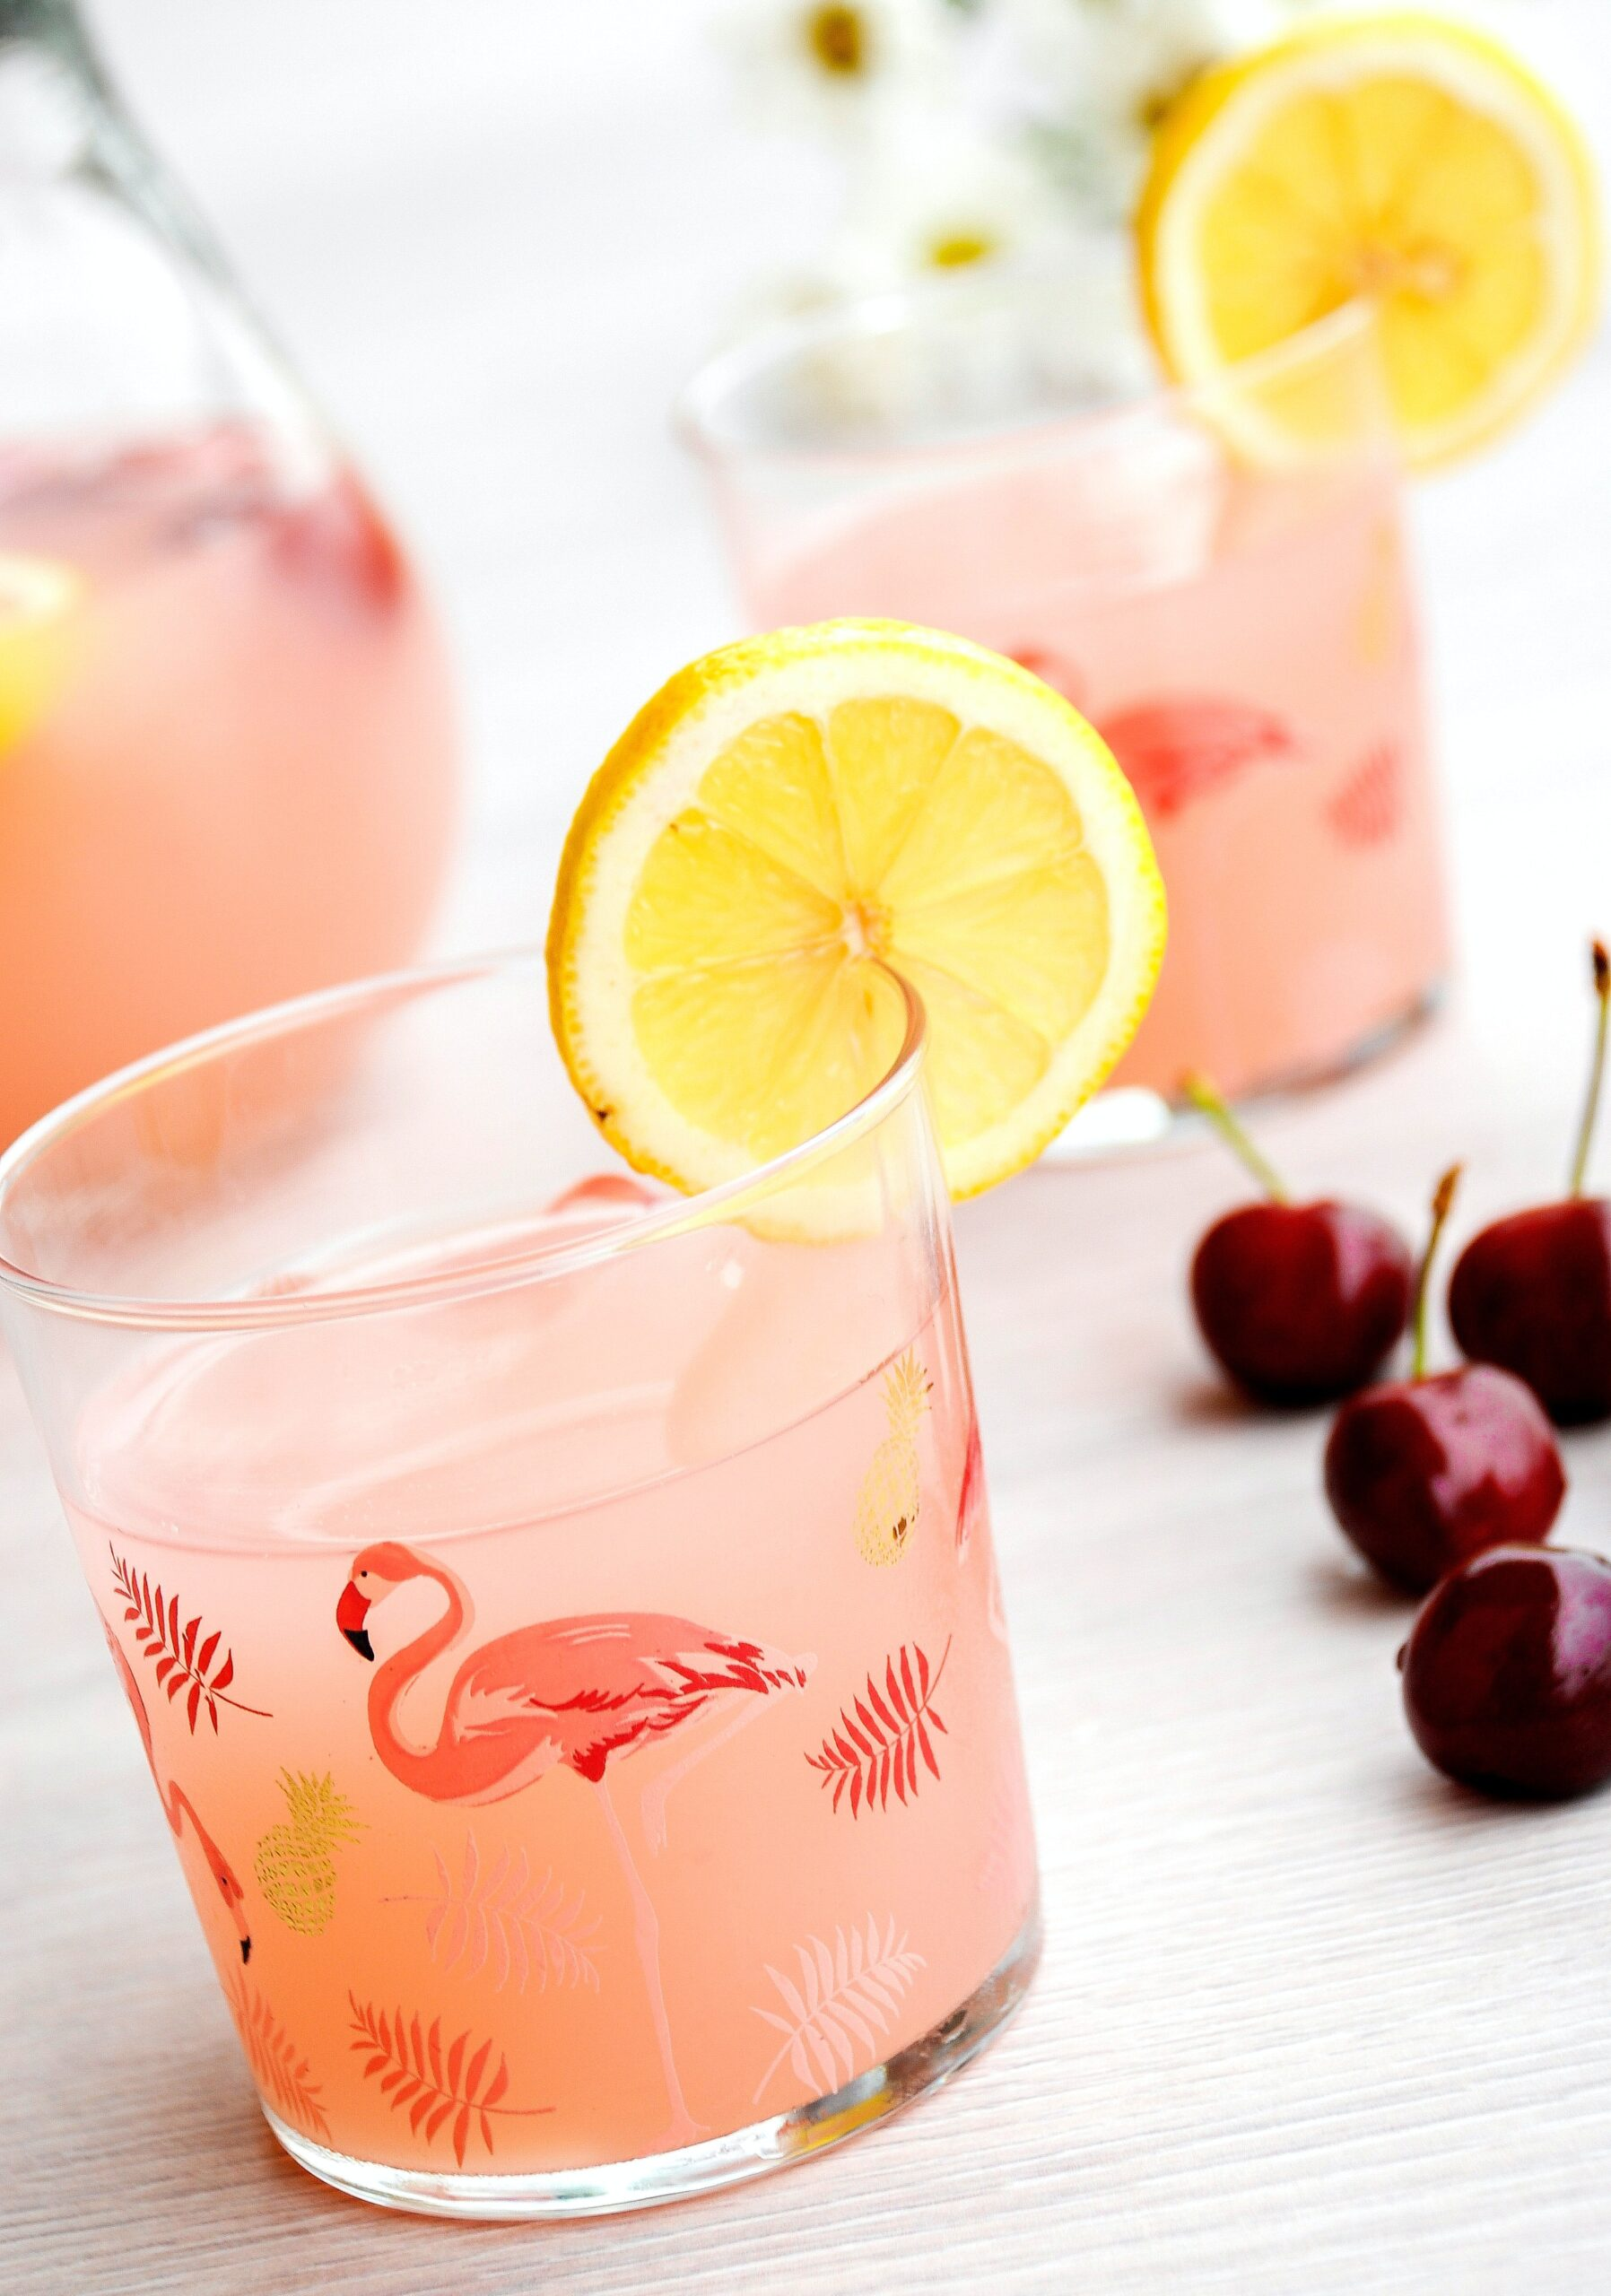 flamingo glasses filled with pink beverage and lemon wedge